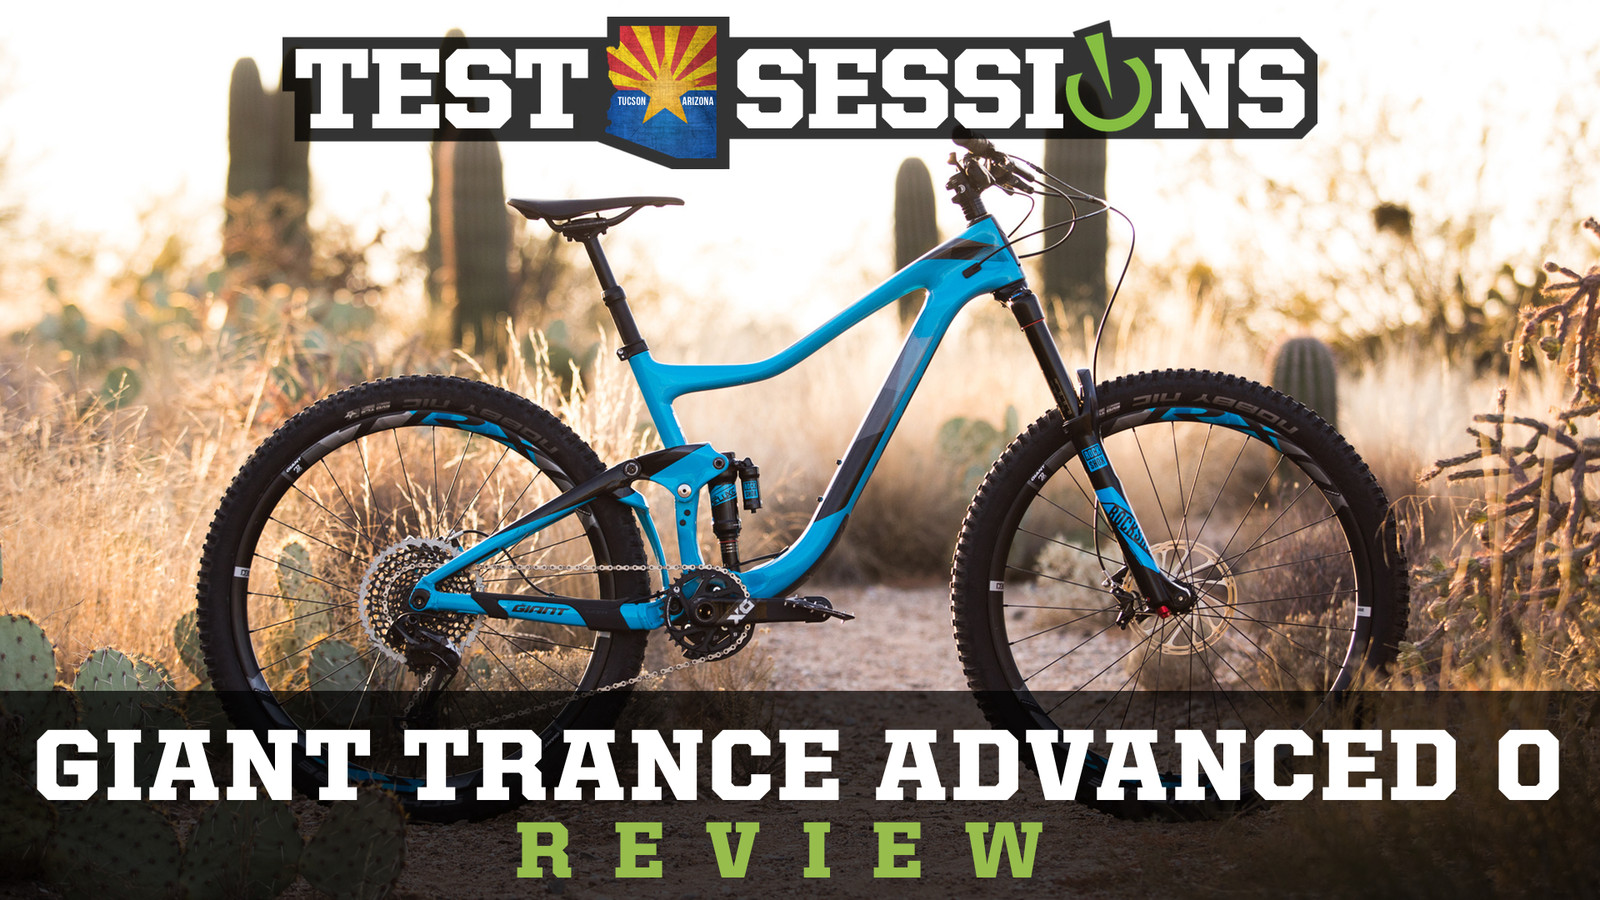 Review - 2017 Giant Trance Advanced from Vital MTB Test Sessions